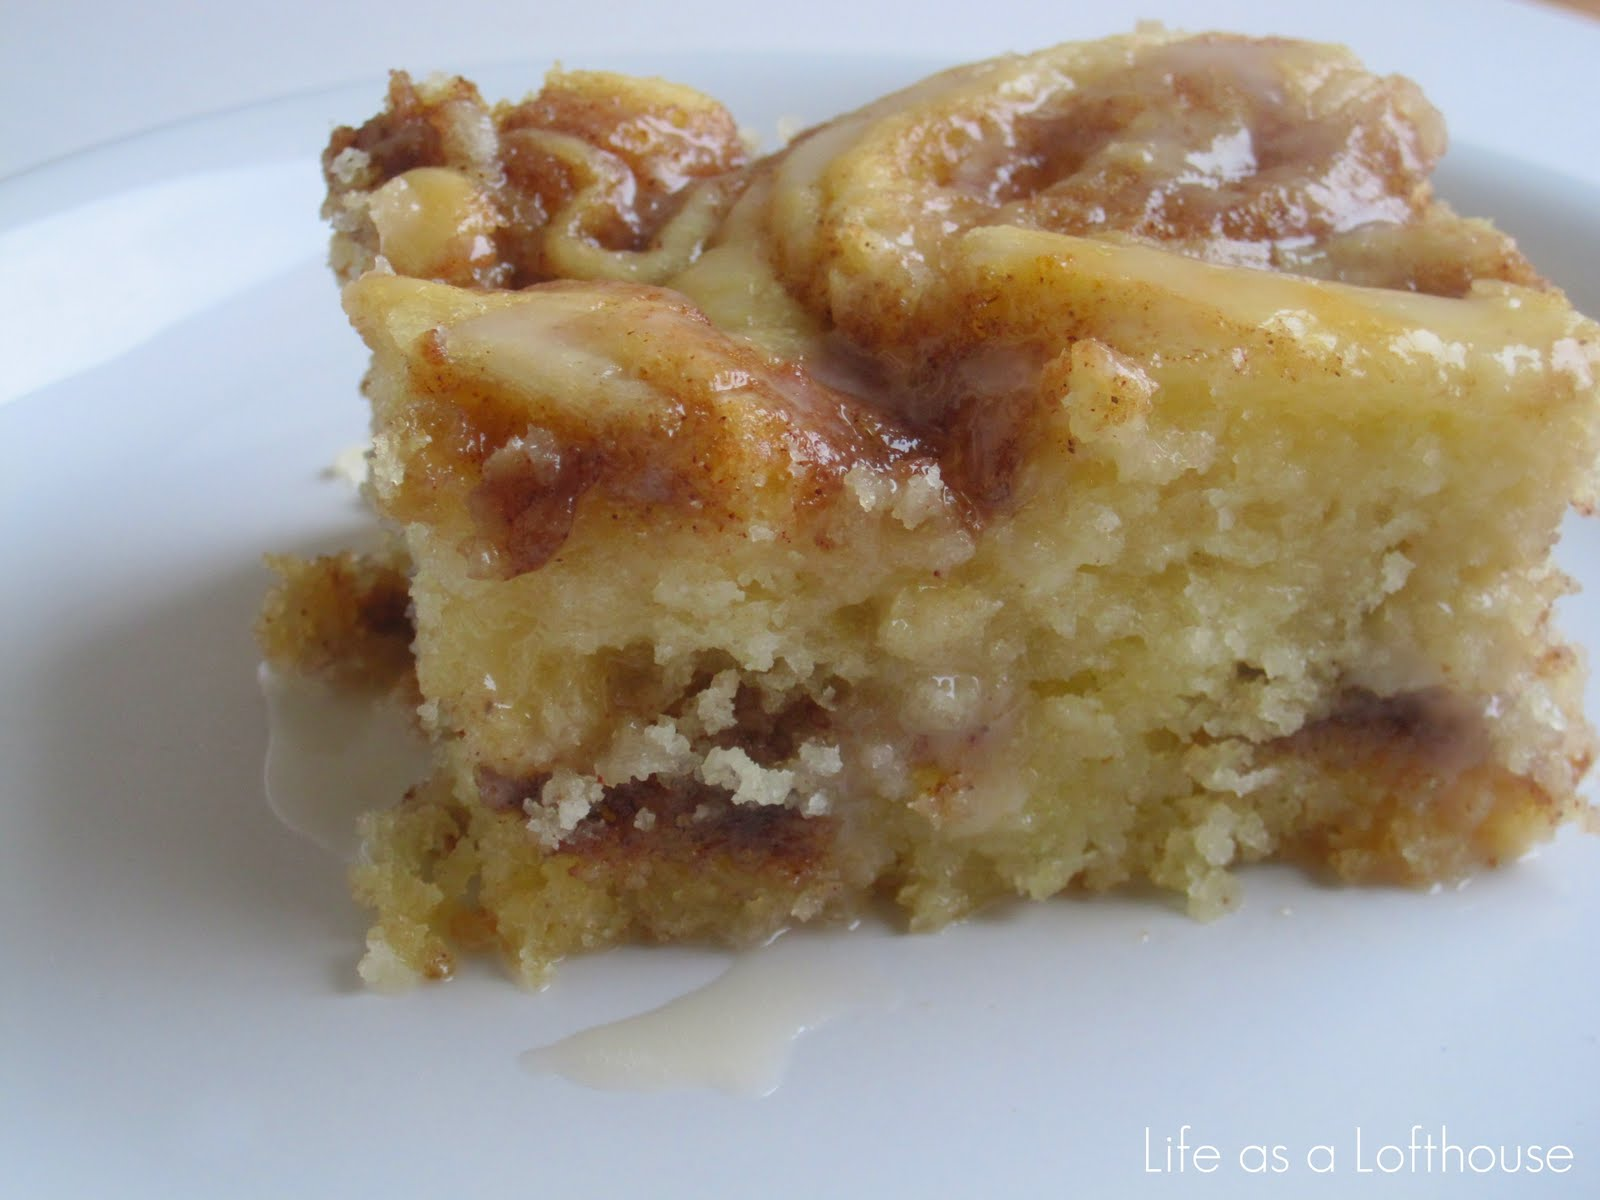 In a lab coat and wedding gown: Gooey Cinnamon Roll Cake